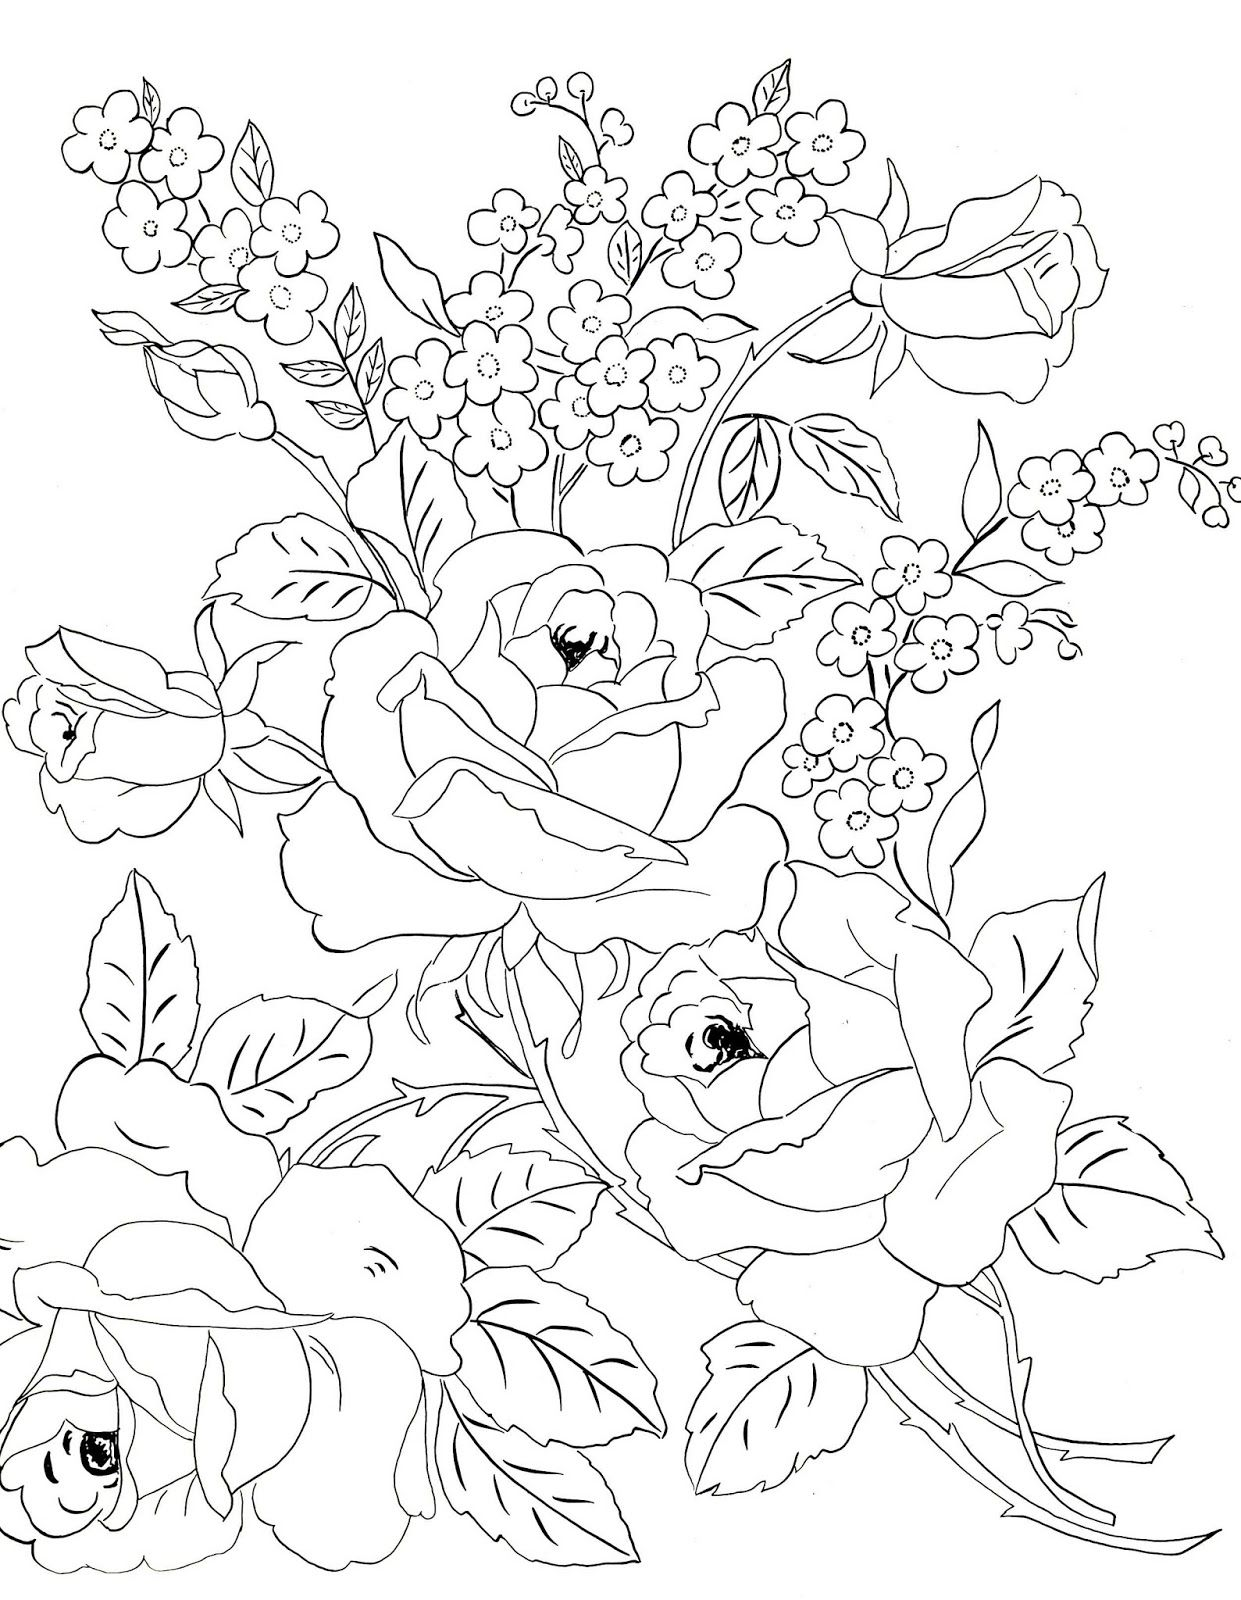 Two More Of These Lovely Embroidery Patterns From Flower Designs By Jane Snead Flower Coloring Pages Fabric Painting Coloring Pages